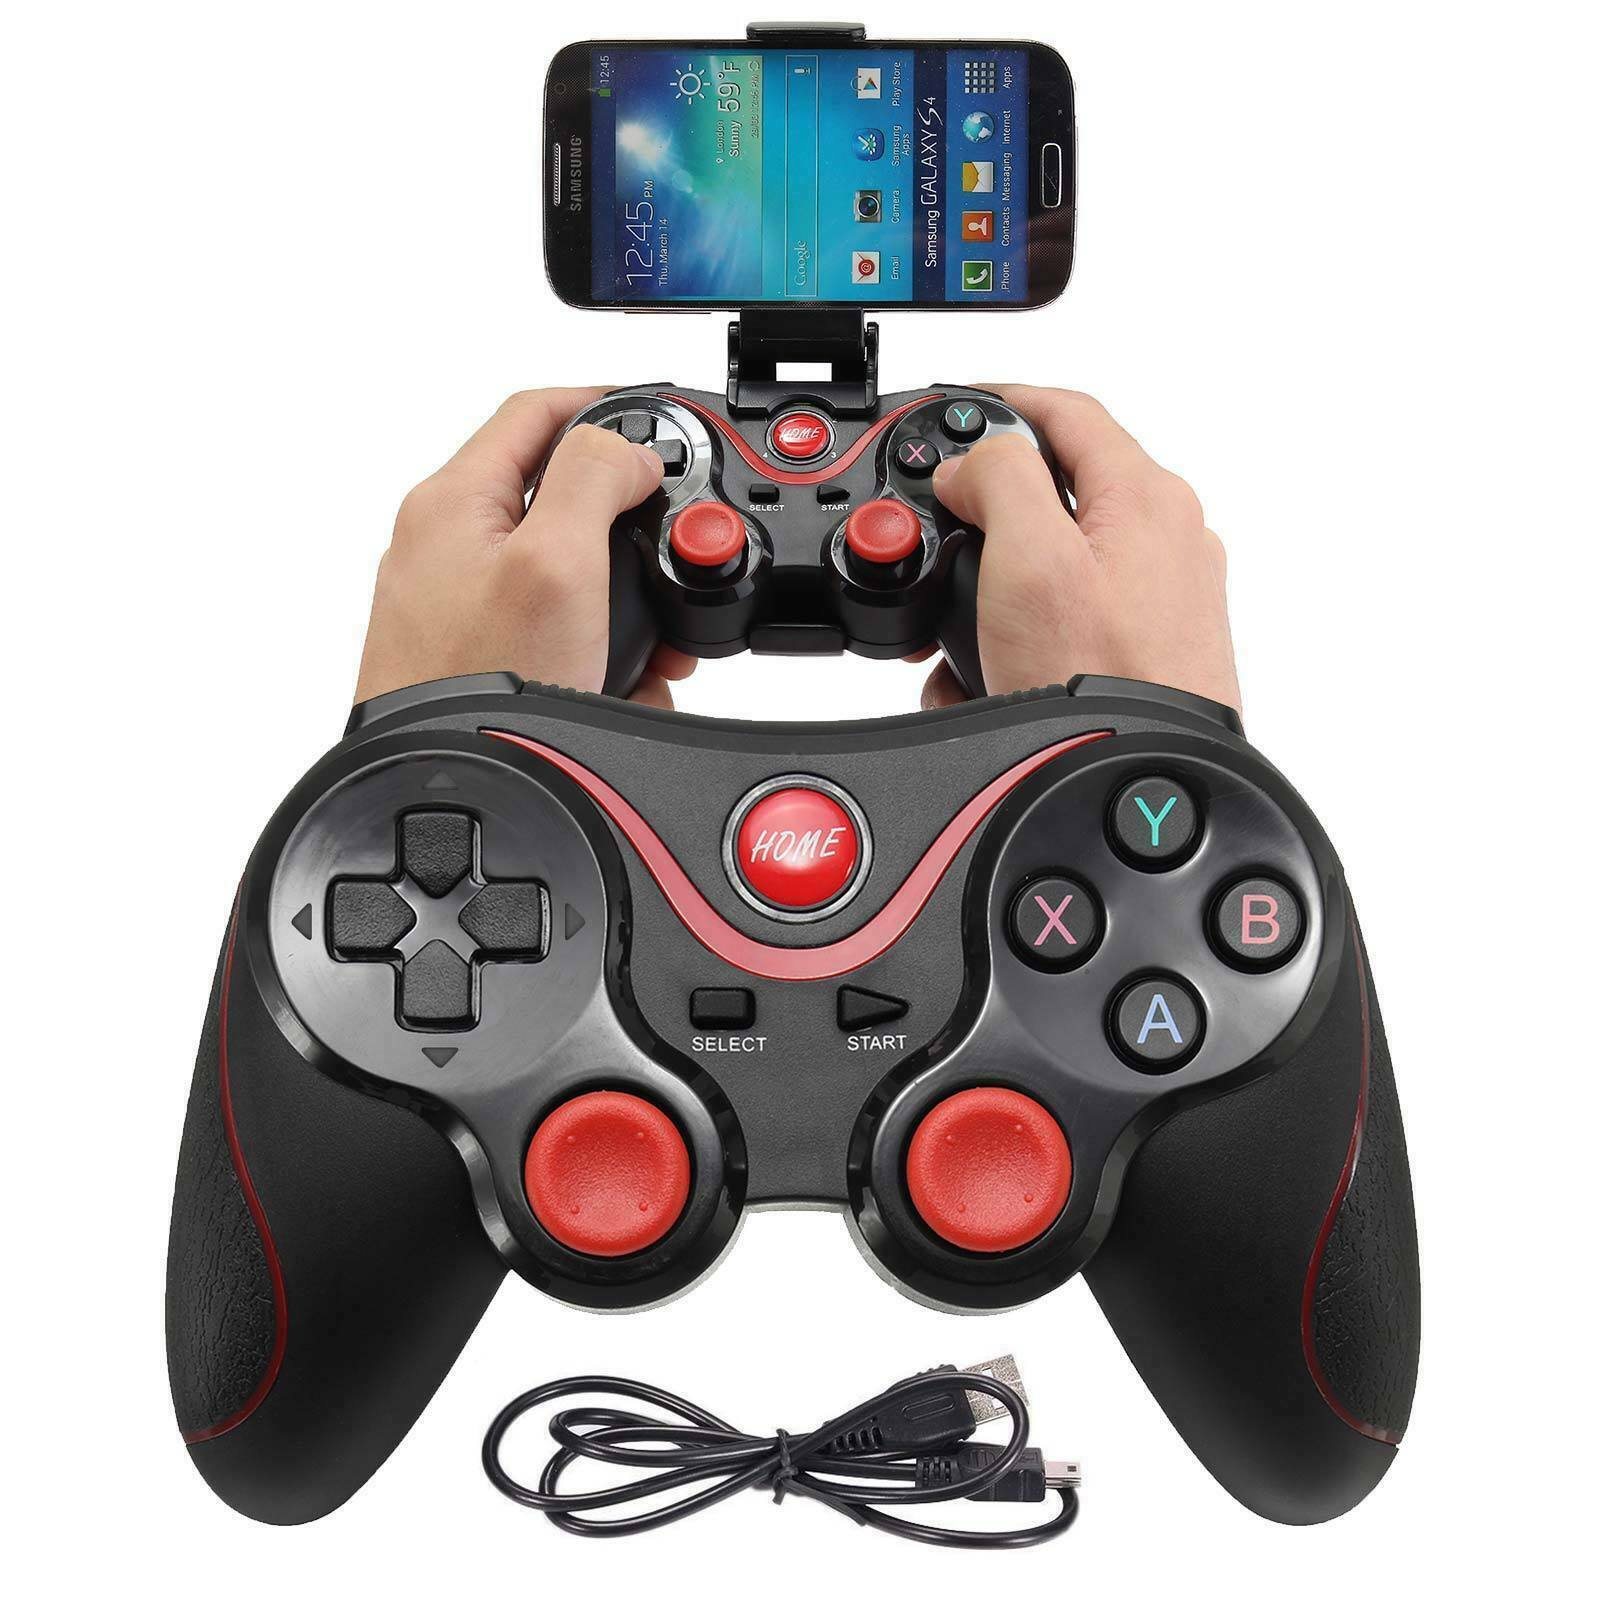 Phone Wireless Bluetooth GamePad Controller For Android TV Box Tablet Controllers & Attachments